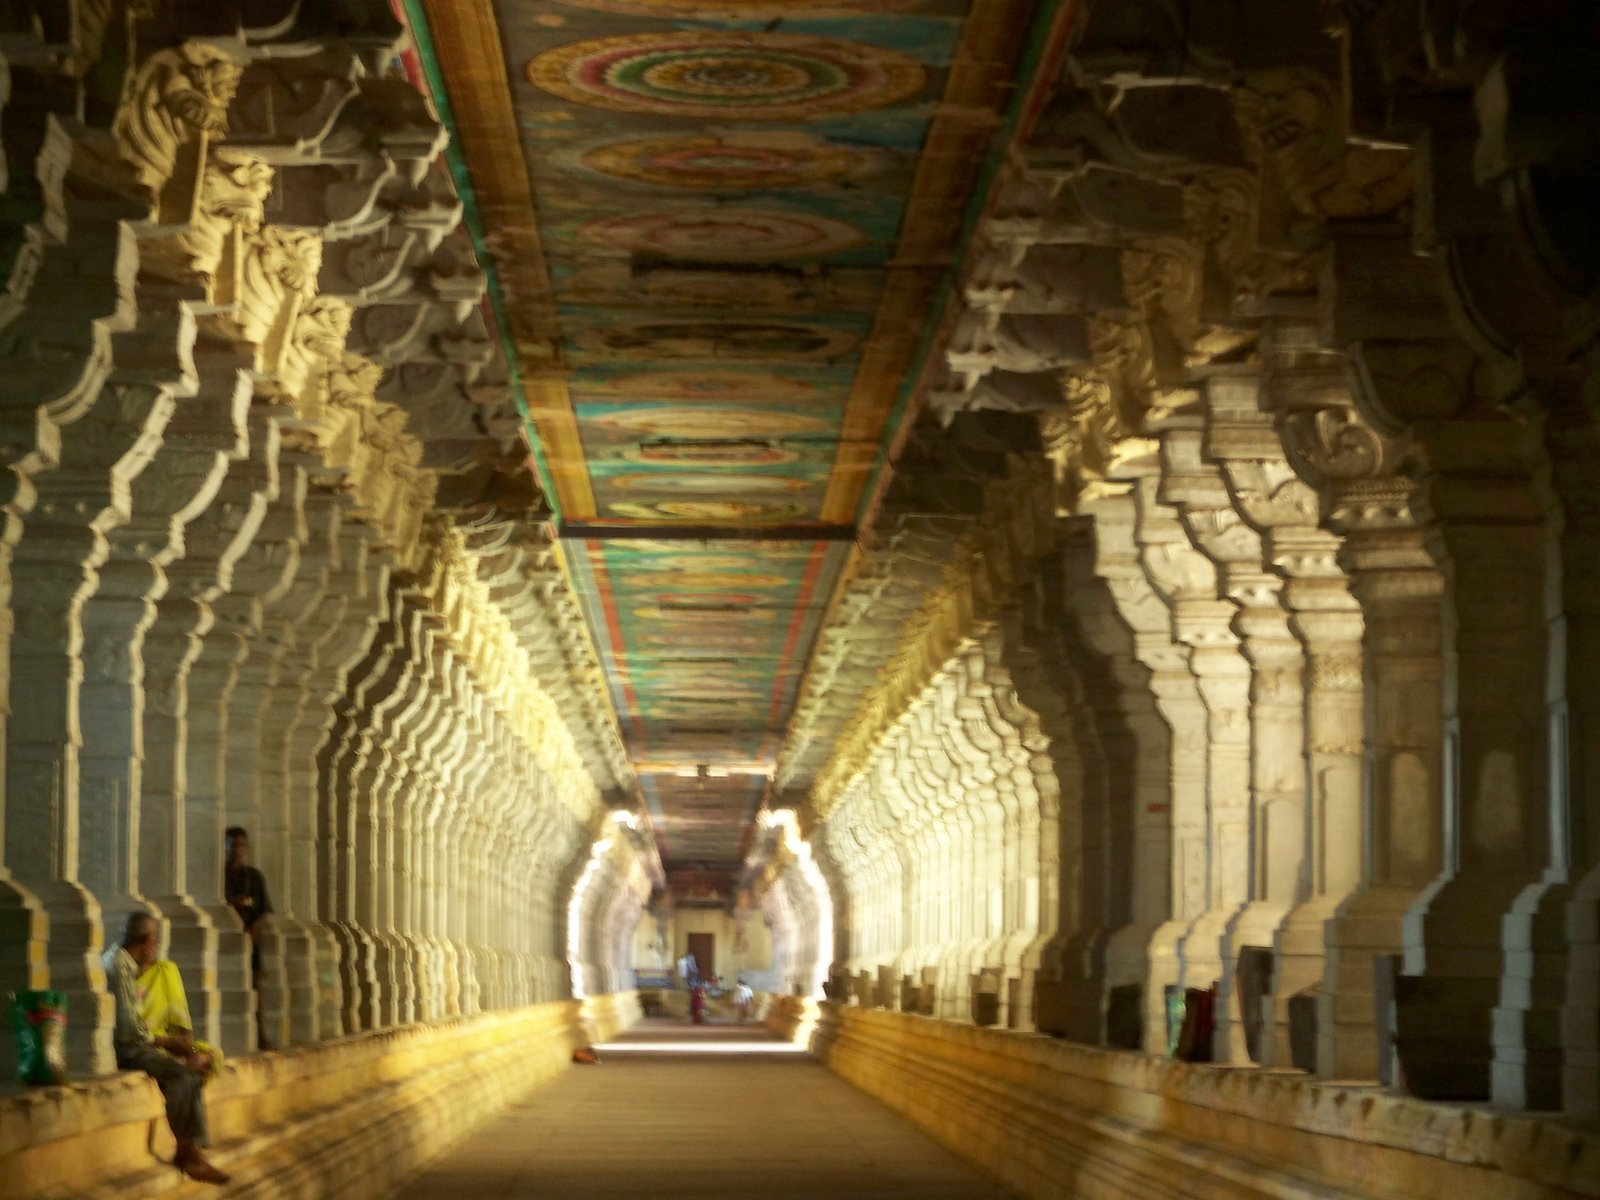 Thousand Pillars Hall